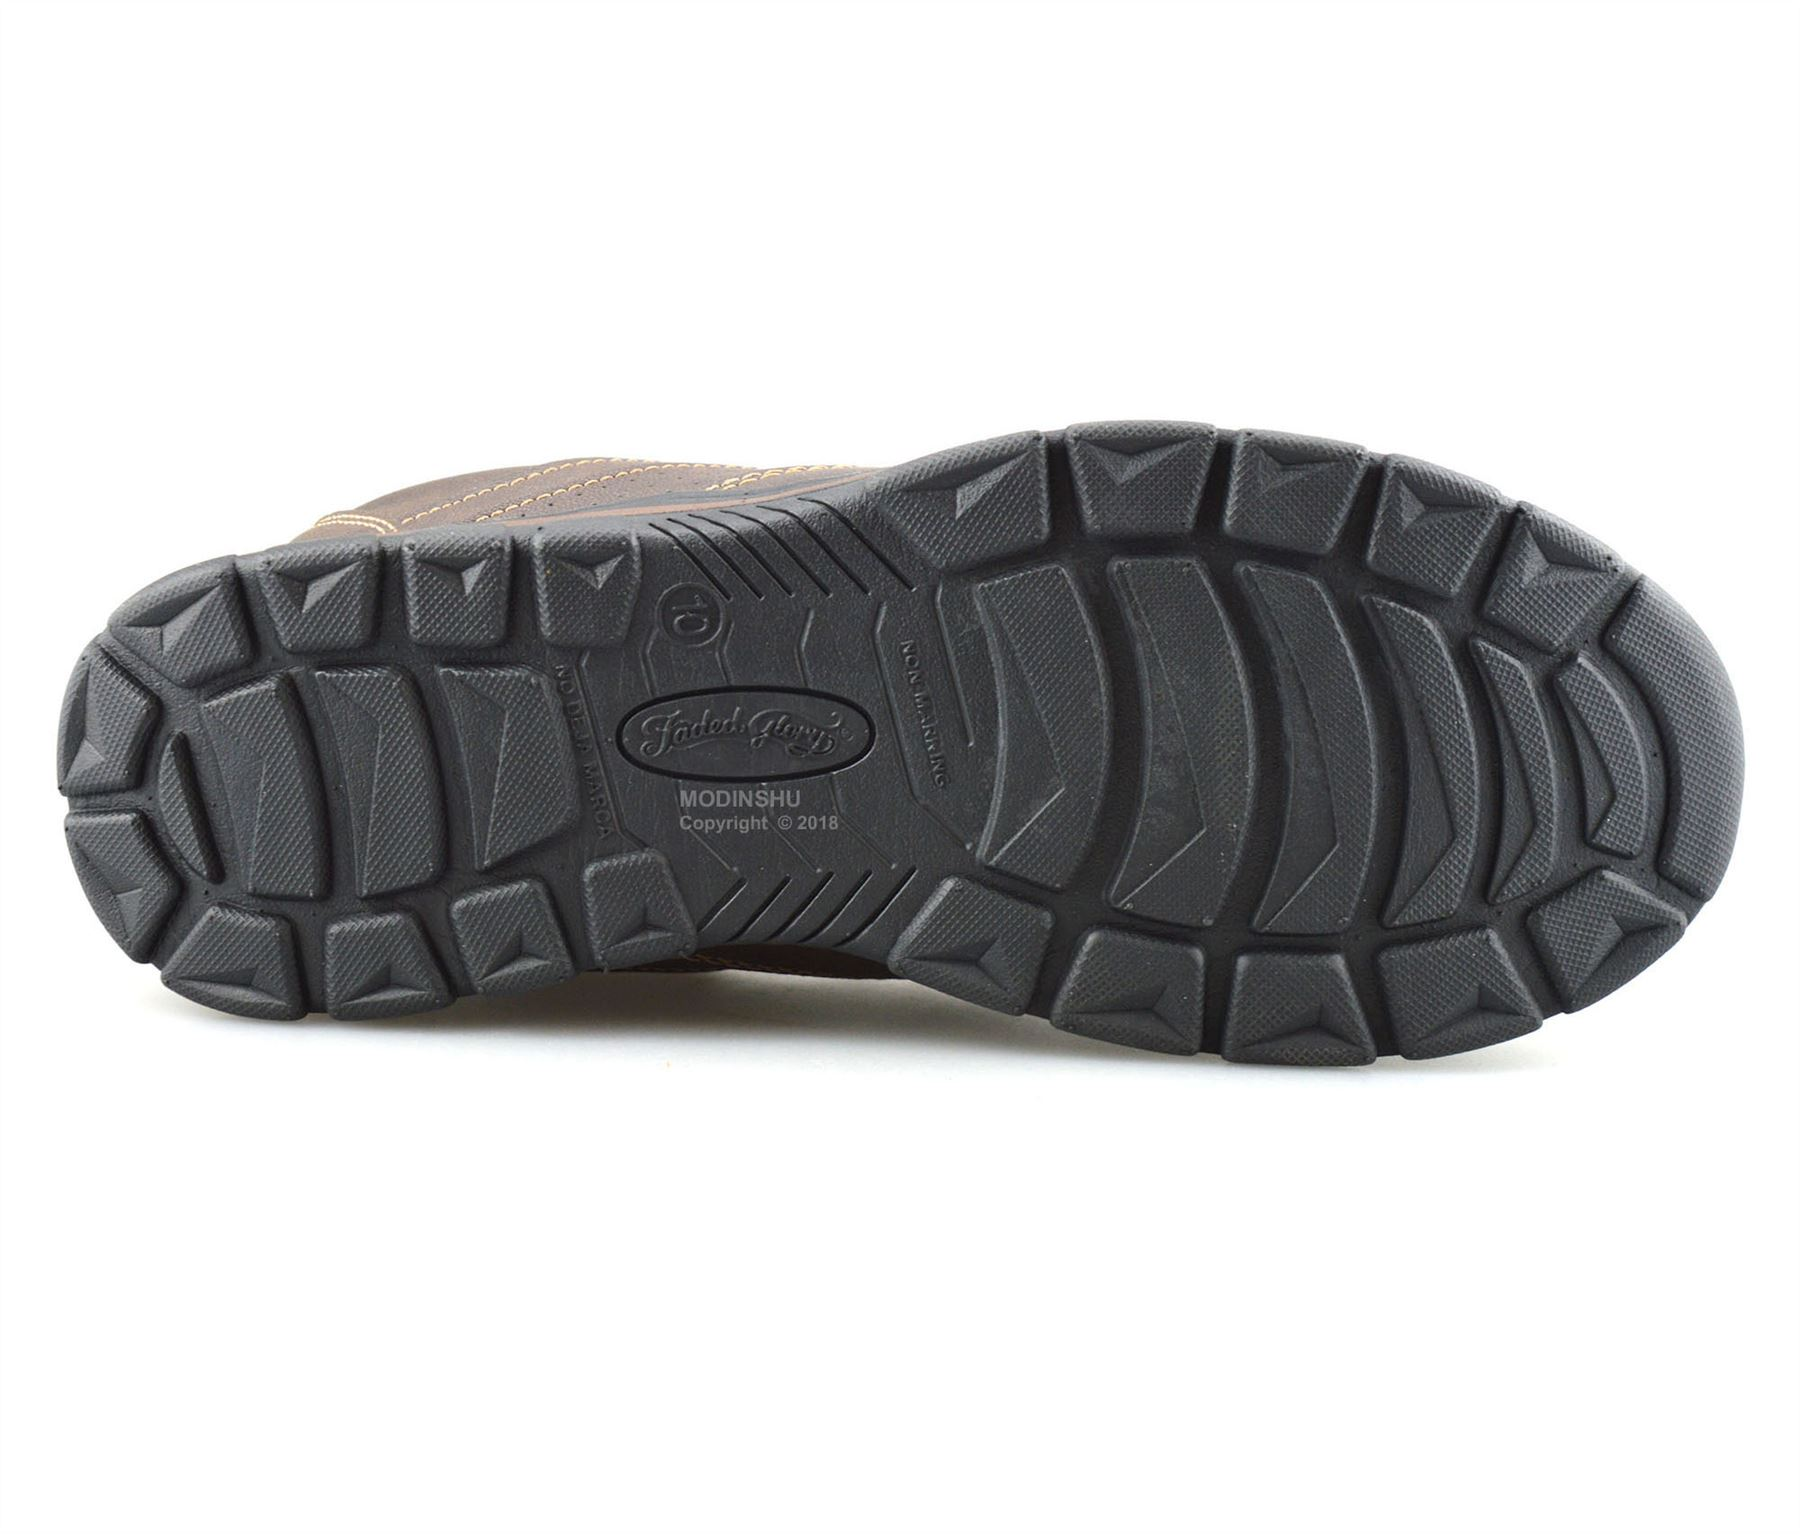 Mens-Casual-Memory-Foam-Slip-On-Walking-Moccasin-Loafers-Driving-Boat-Shoes-Size thumbnail 22